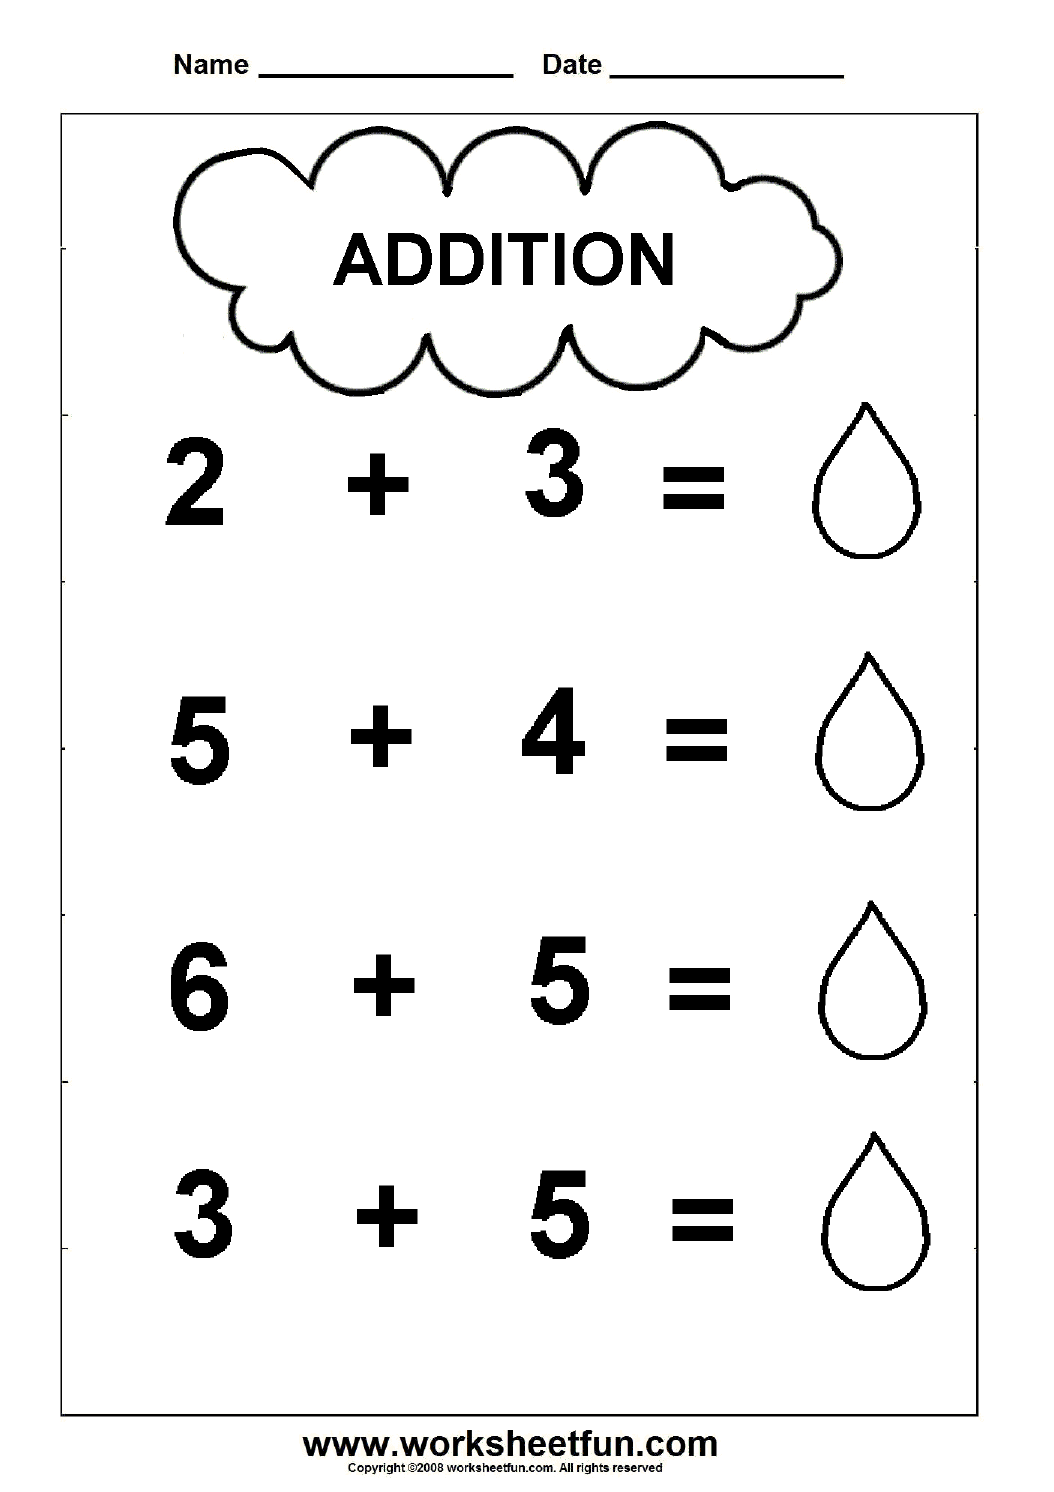 math worksheet : 1000 images about psicopedagogia on pinterest  color by numbers  : Addition Worksheets